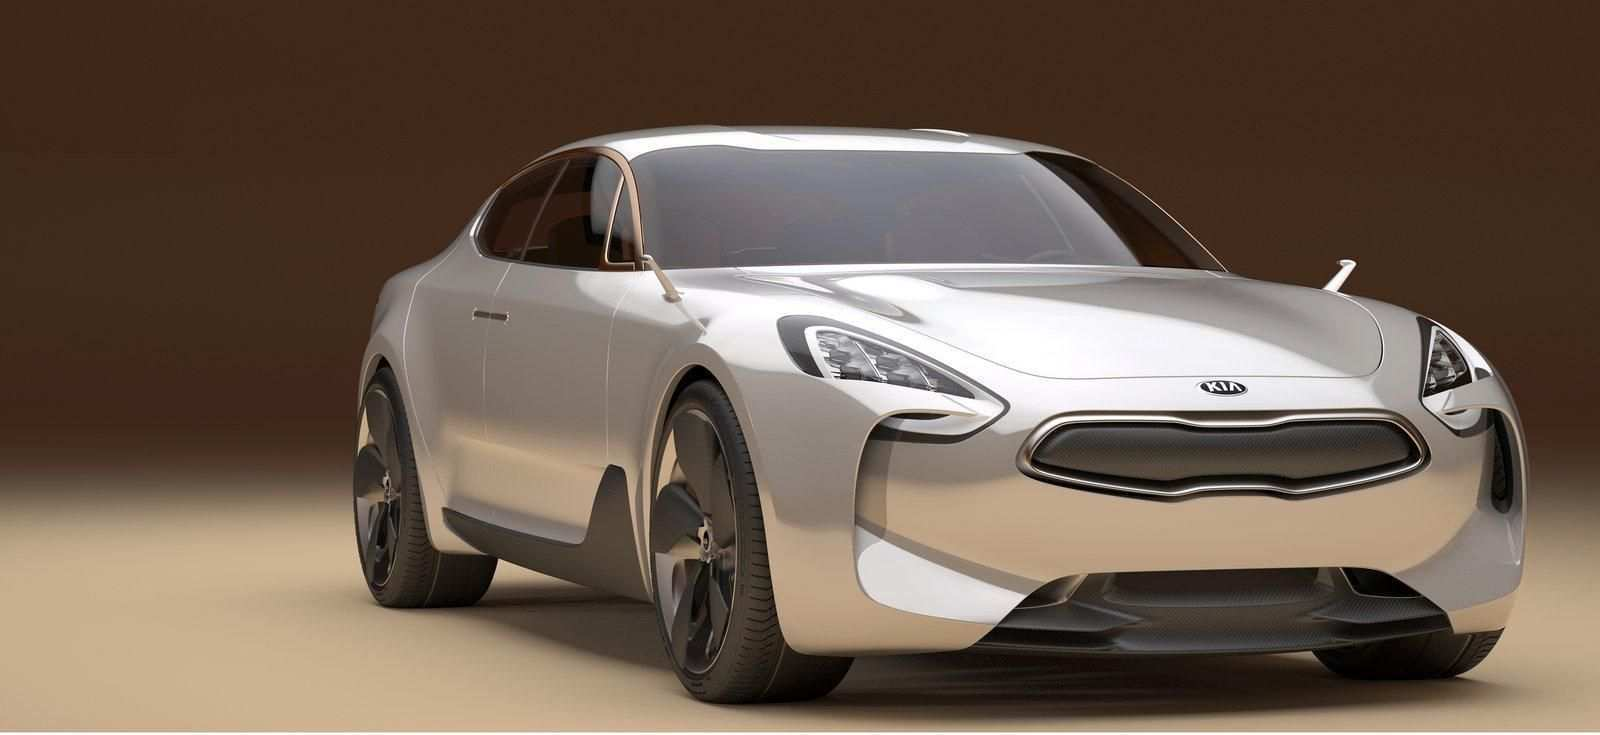 88 Concept of 2020 Kia Gt Coupe Spy Shoot with 2020 Kia Gt Coupe